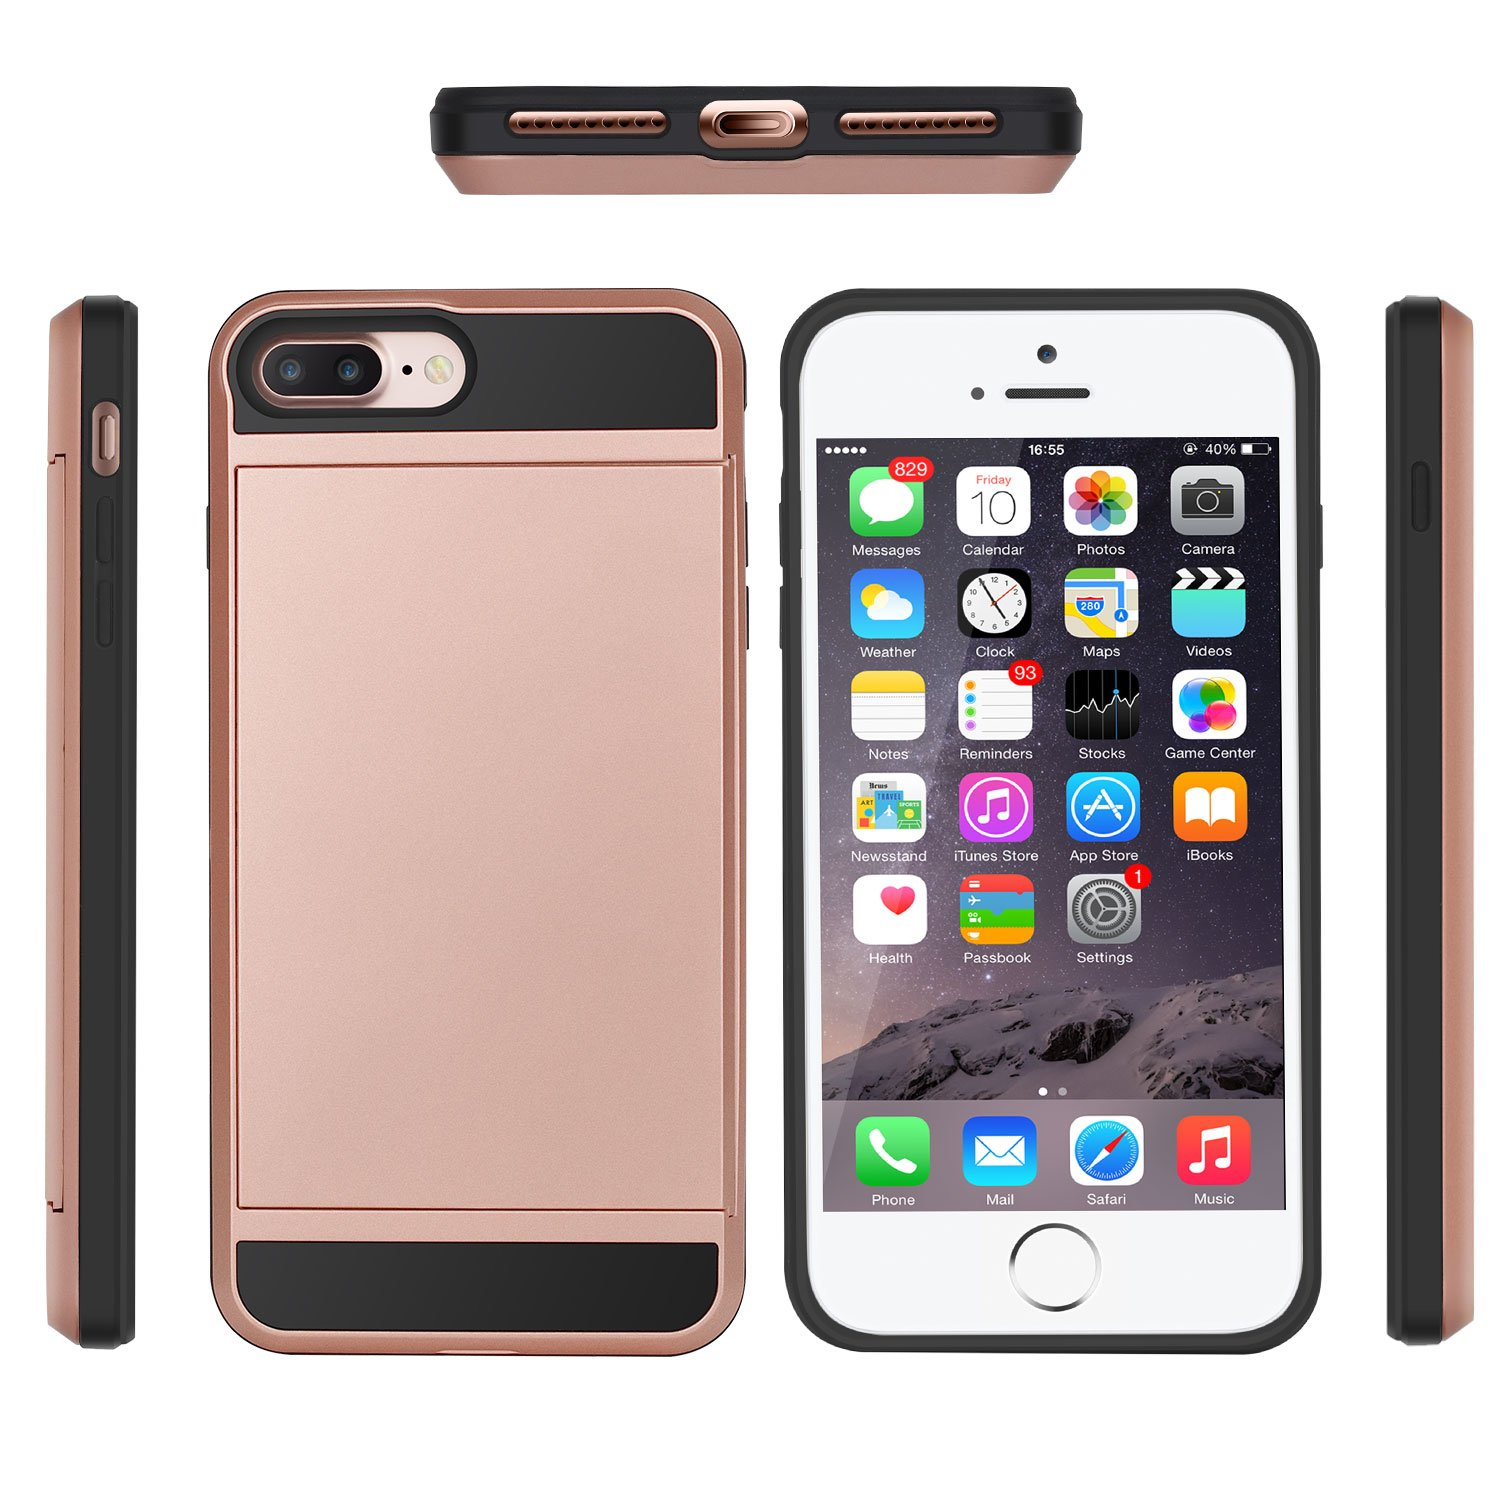 iphone 8 Plus Case,iPhone 7 Plus Case,JWCTECH iphone 8 Plus Cases Wallet Card Holder Bumper Case Dual Layer Cover and Flexible TPU Case for Apple iPhone 7 Plus/8 Plus (5.5inch) - Rose Gold